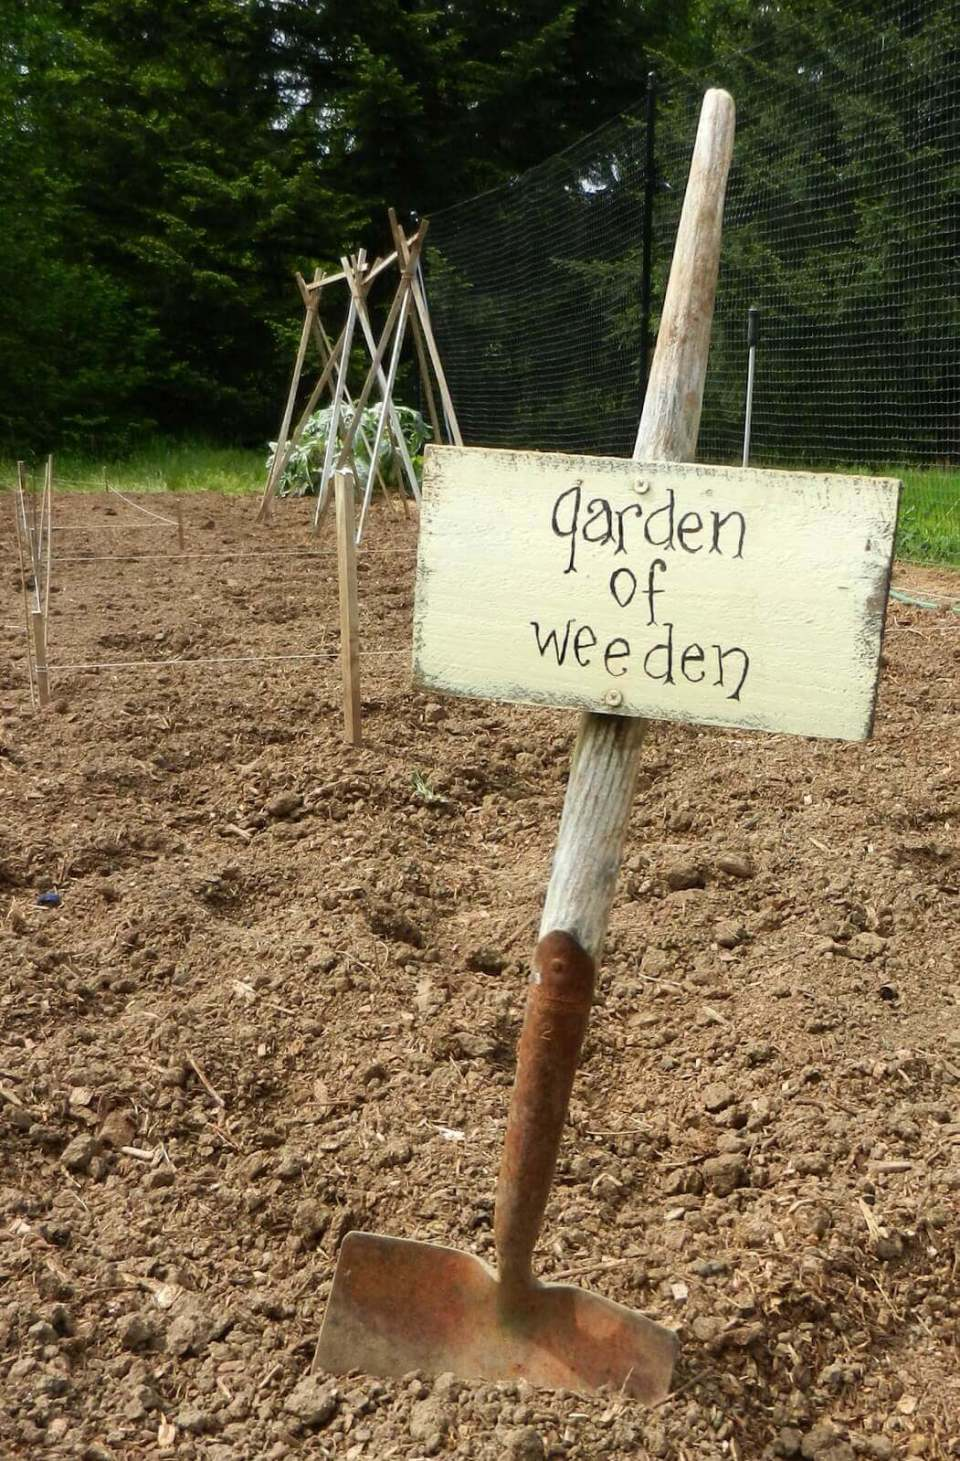 Quirky Sign on a Reused Shovel   Funny DIY Garden Sign Ideas